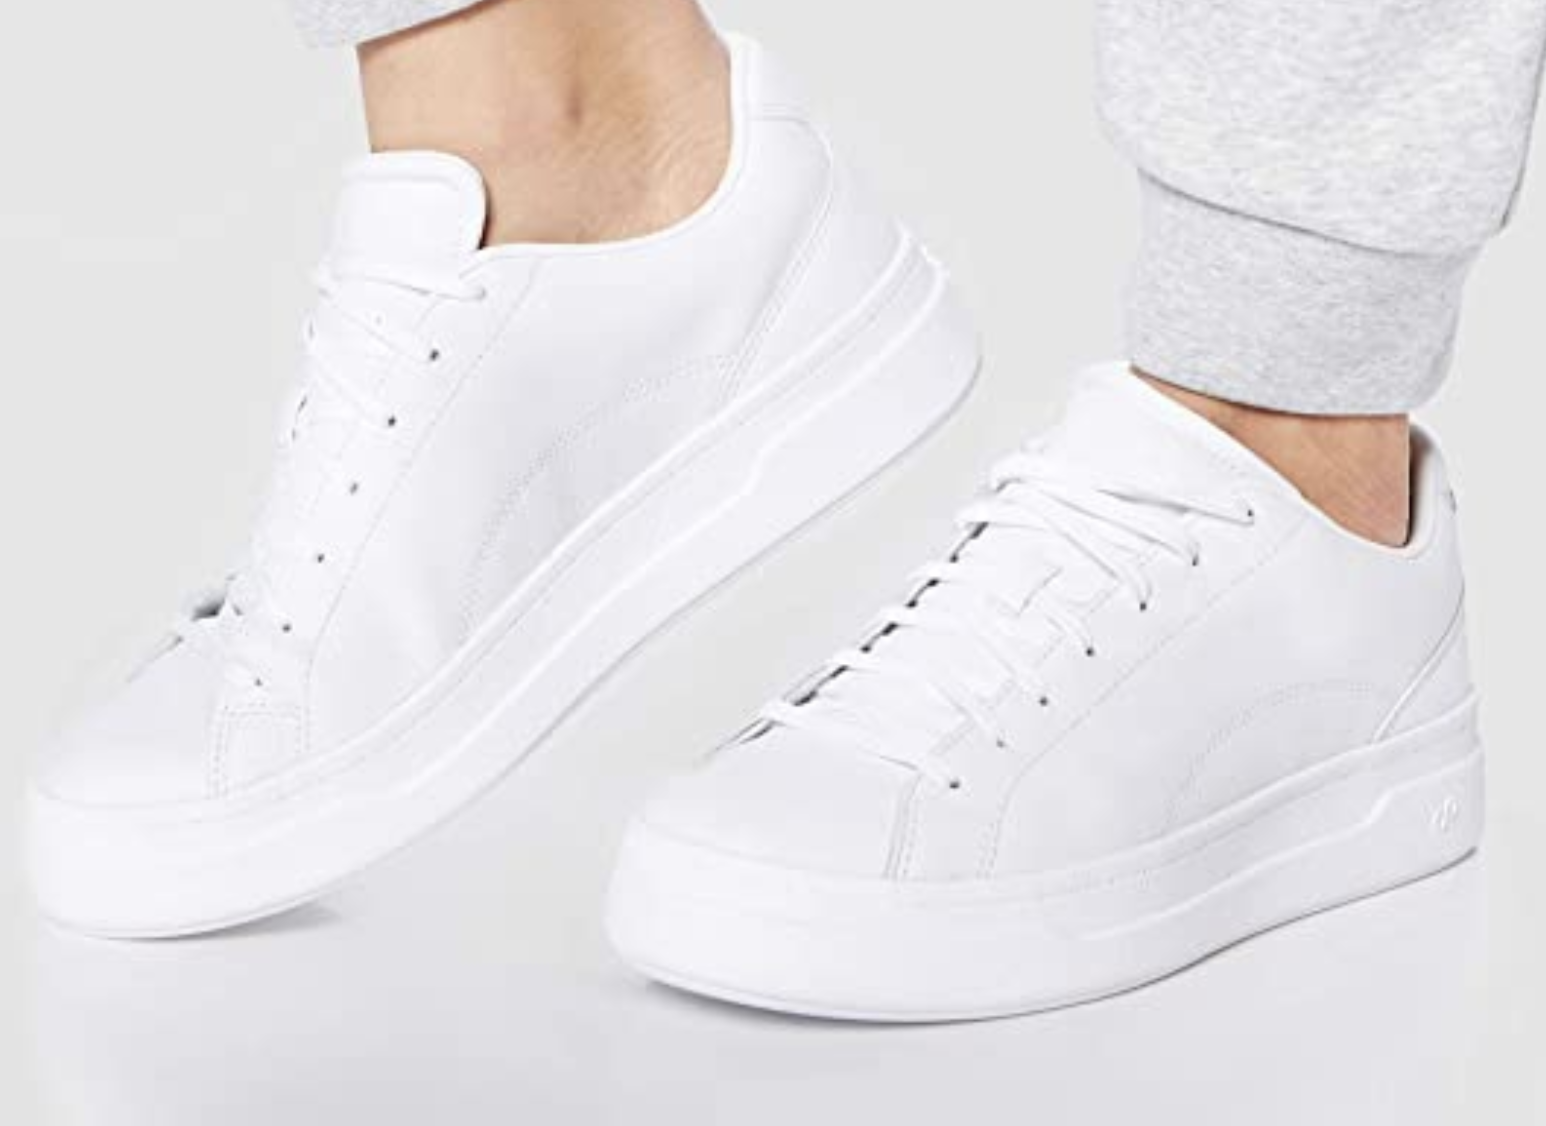 A model in the white lace up sneakers